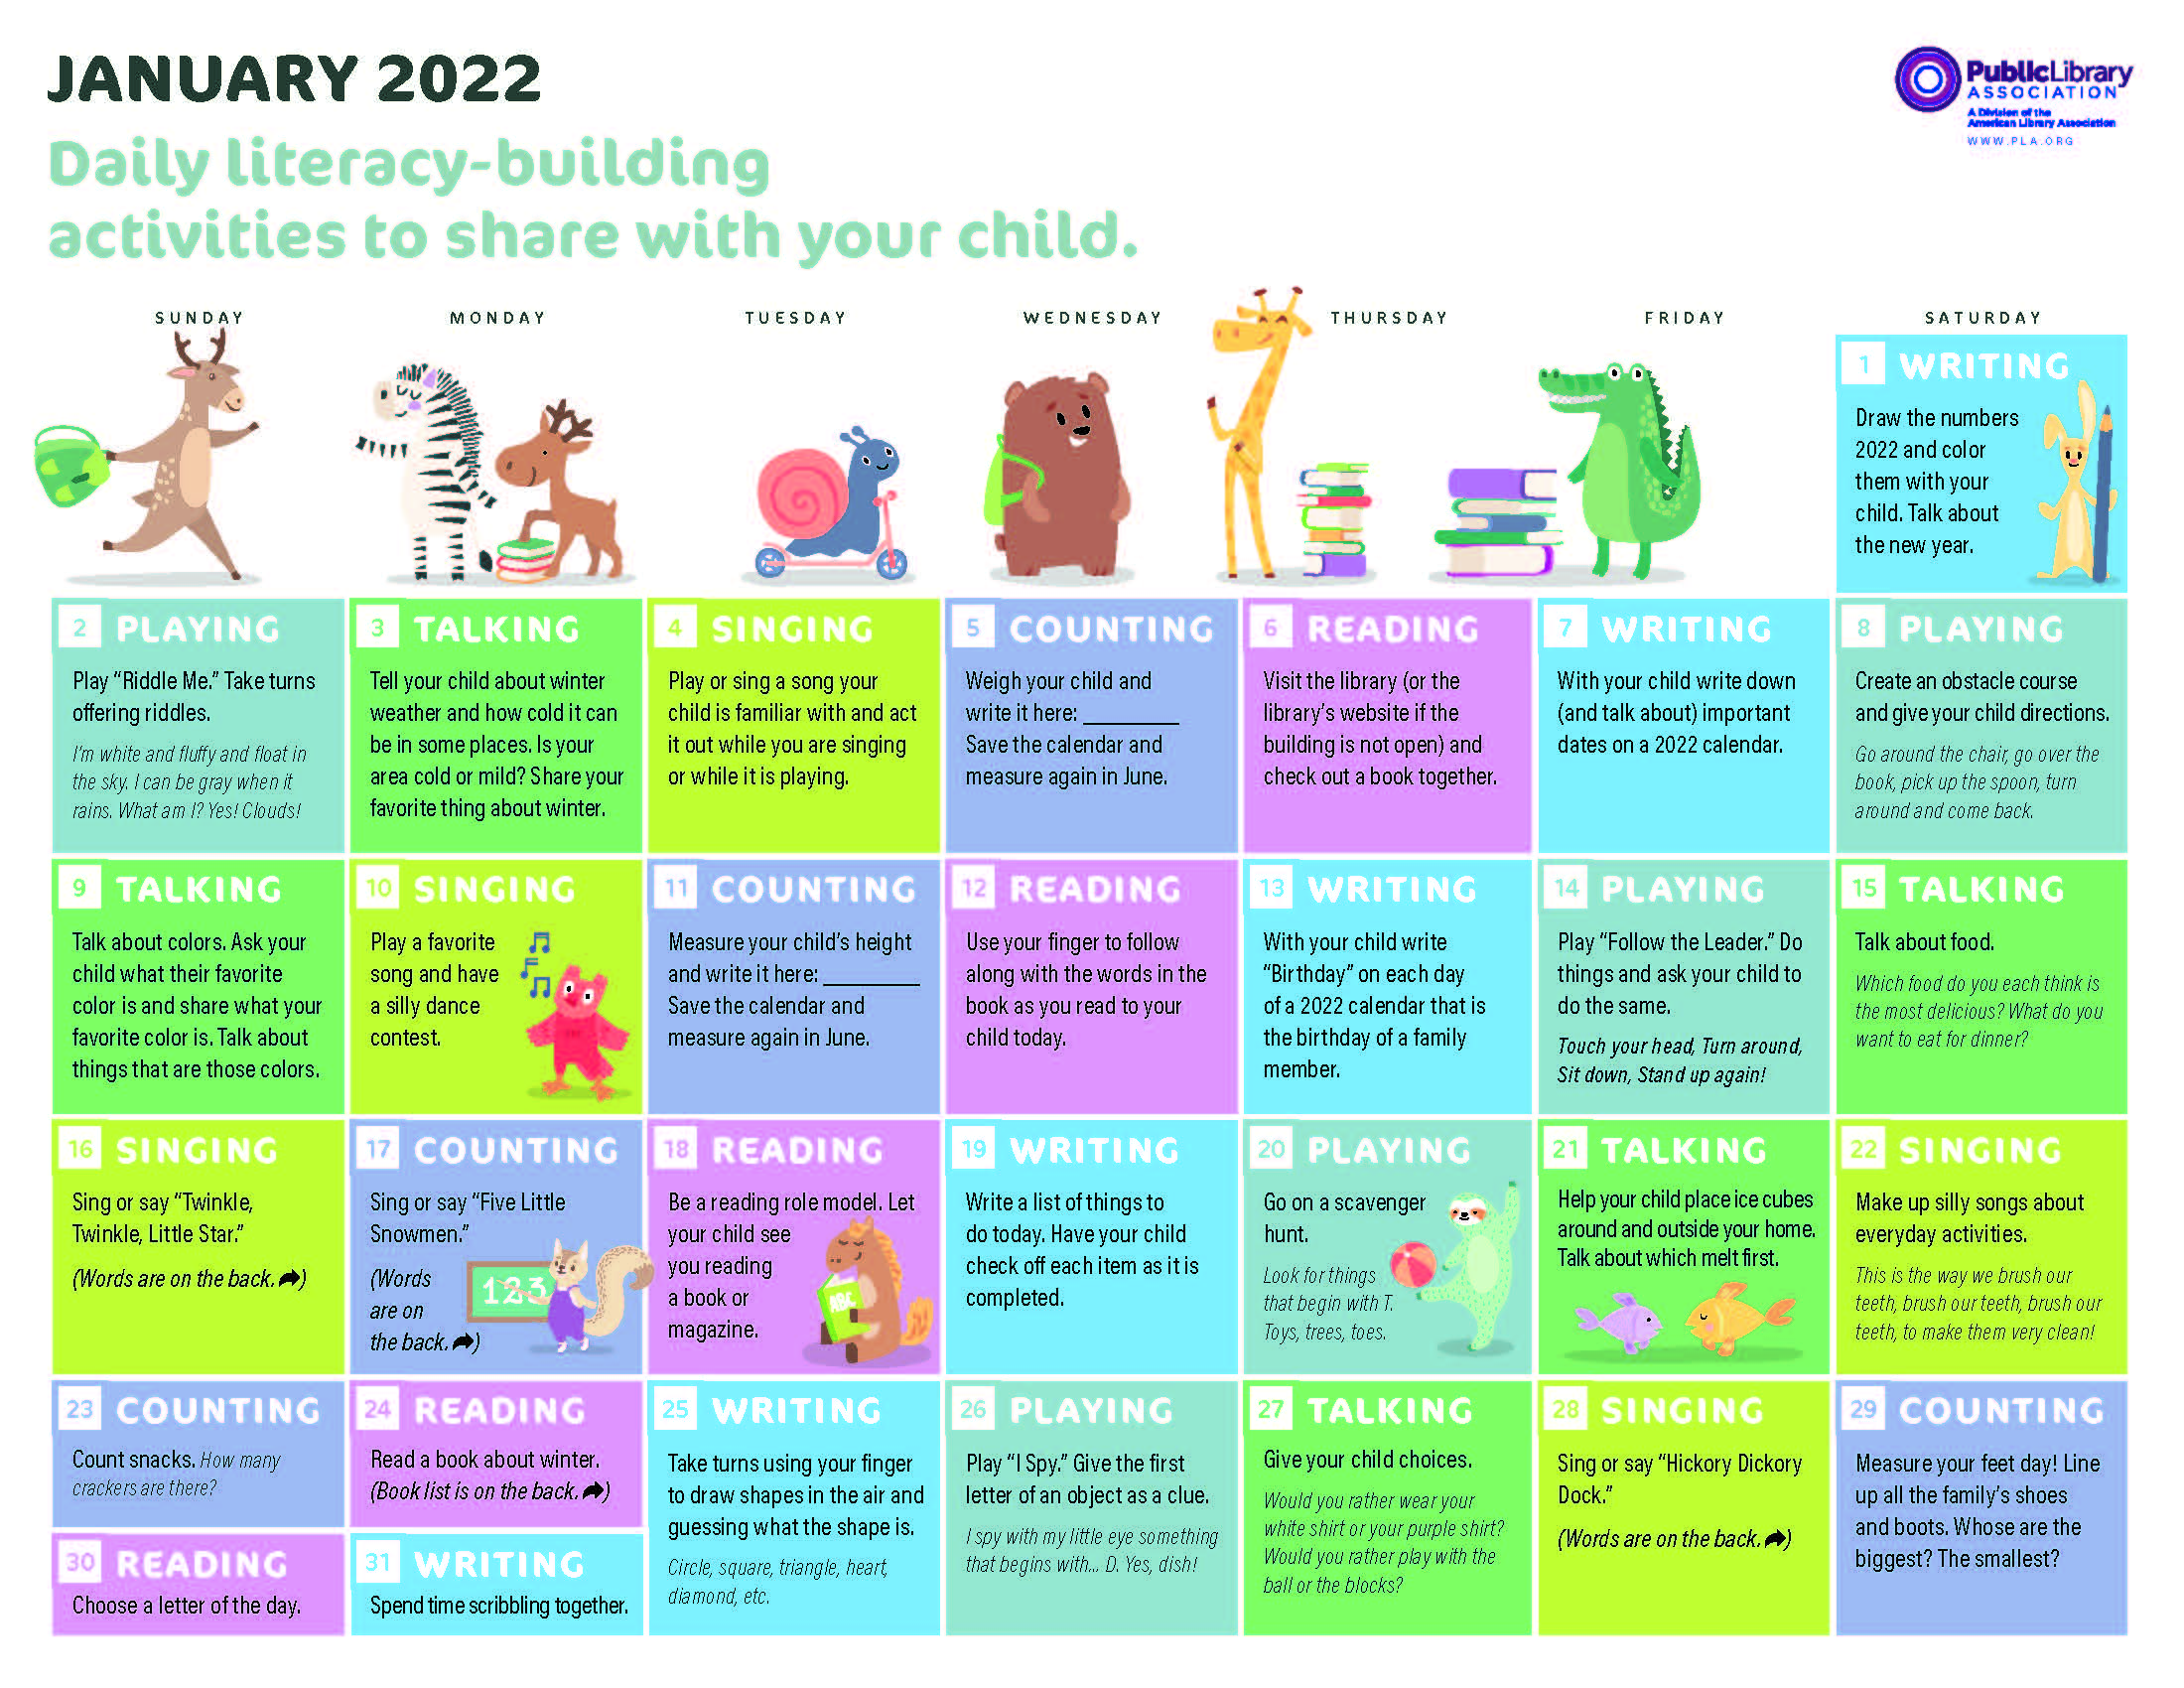 Image for PLA 2022 Early Literacy Activities Calendar—English Version—PDF download